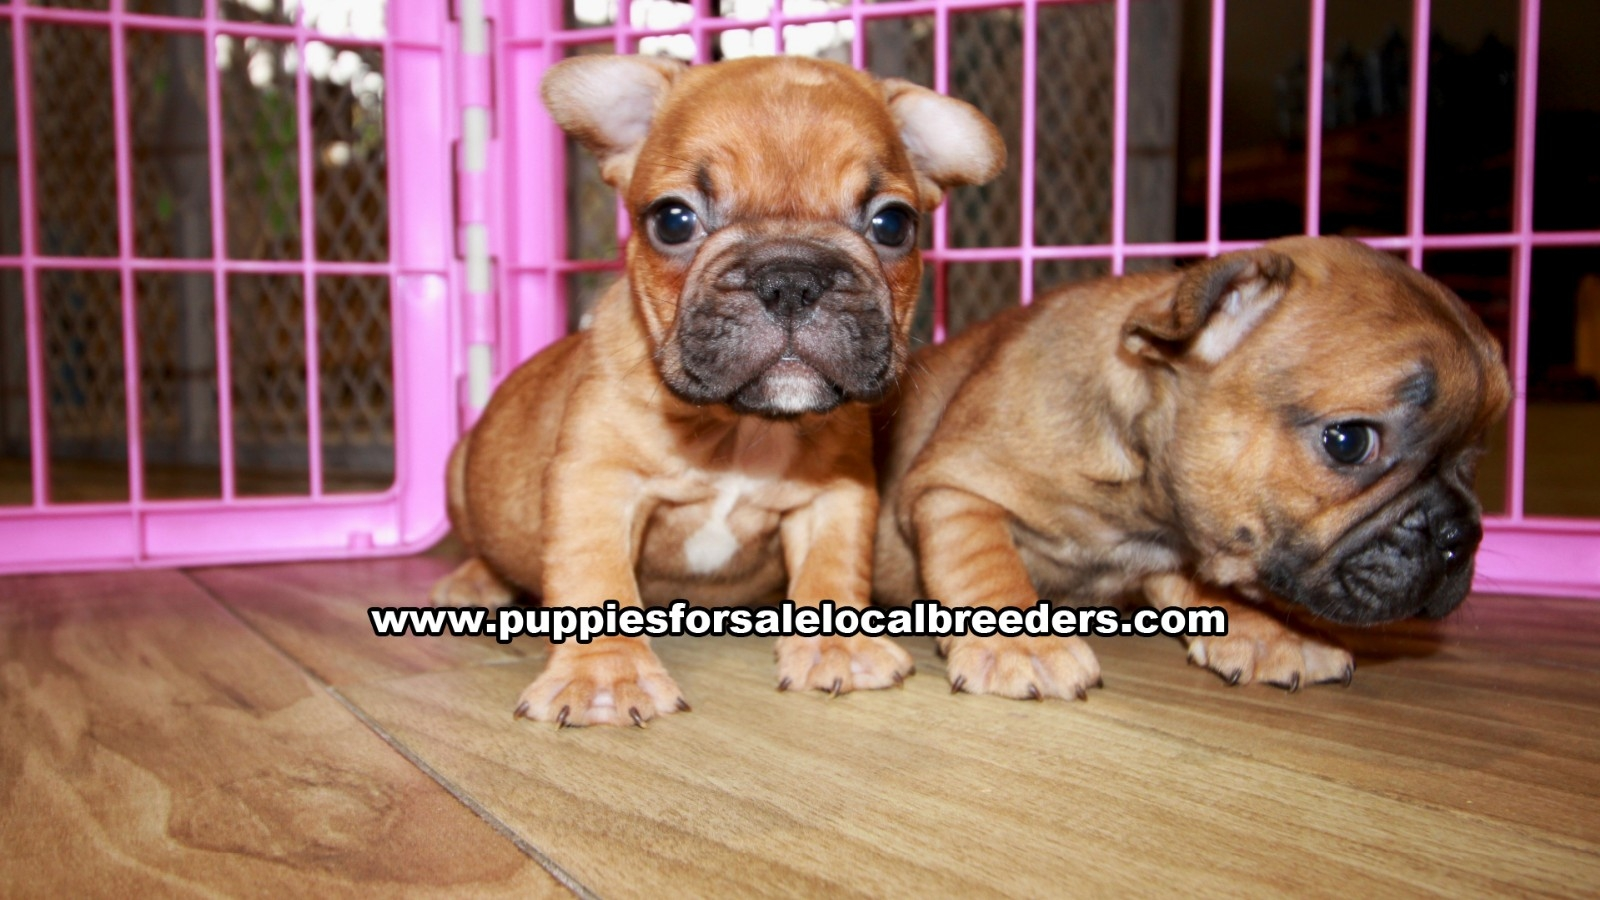 Red Fawn French Bulldog, Puppies For Sale In Georgia, Local Breeders, Near Atlanta, Ga